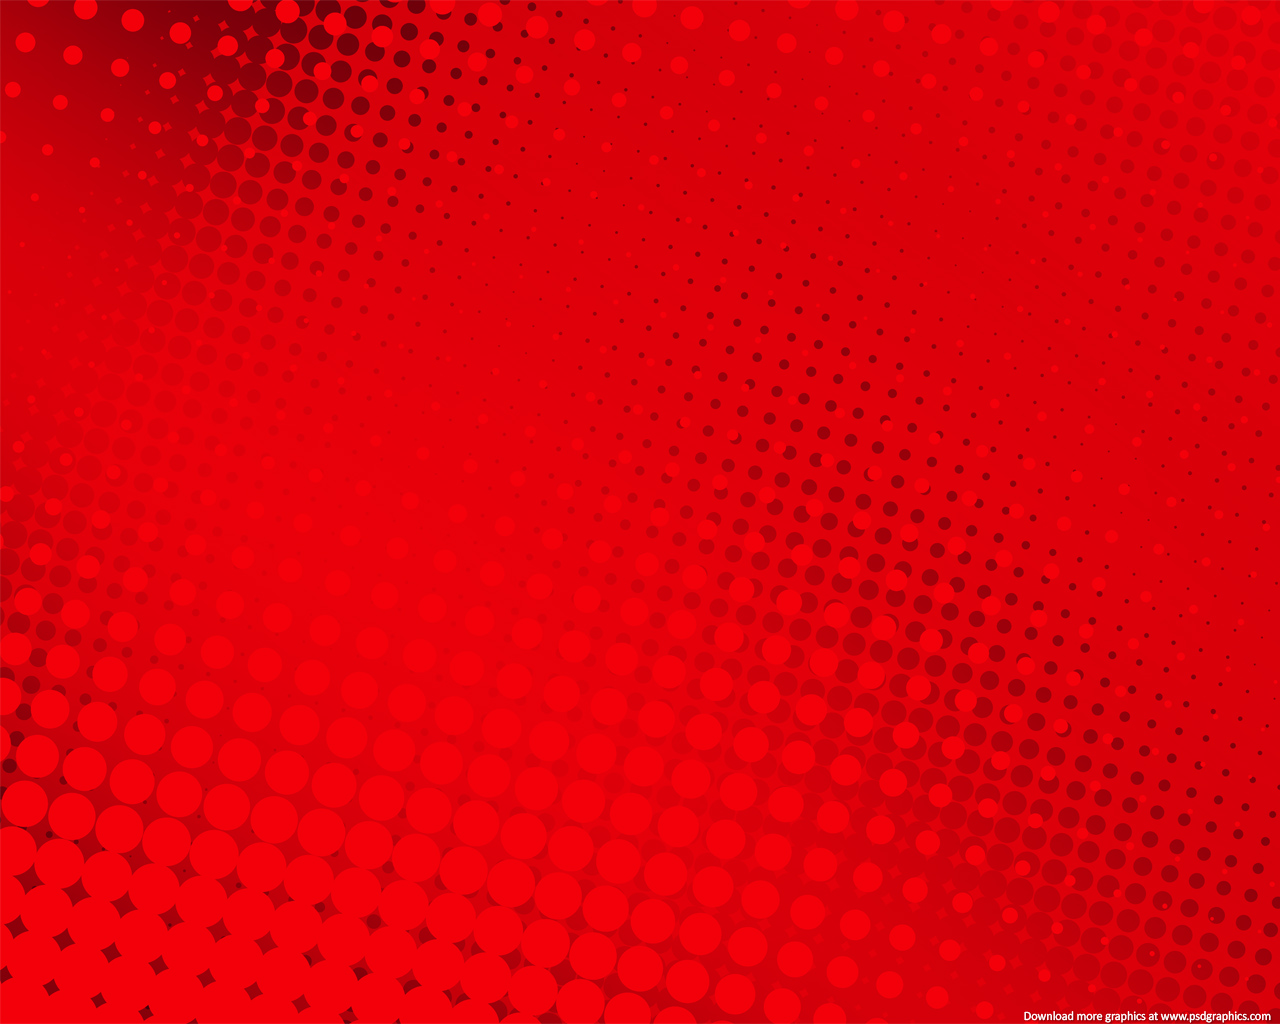 Medium size preview (1280x1024px): Red halftone background